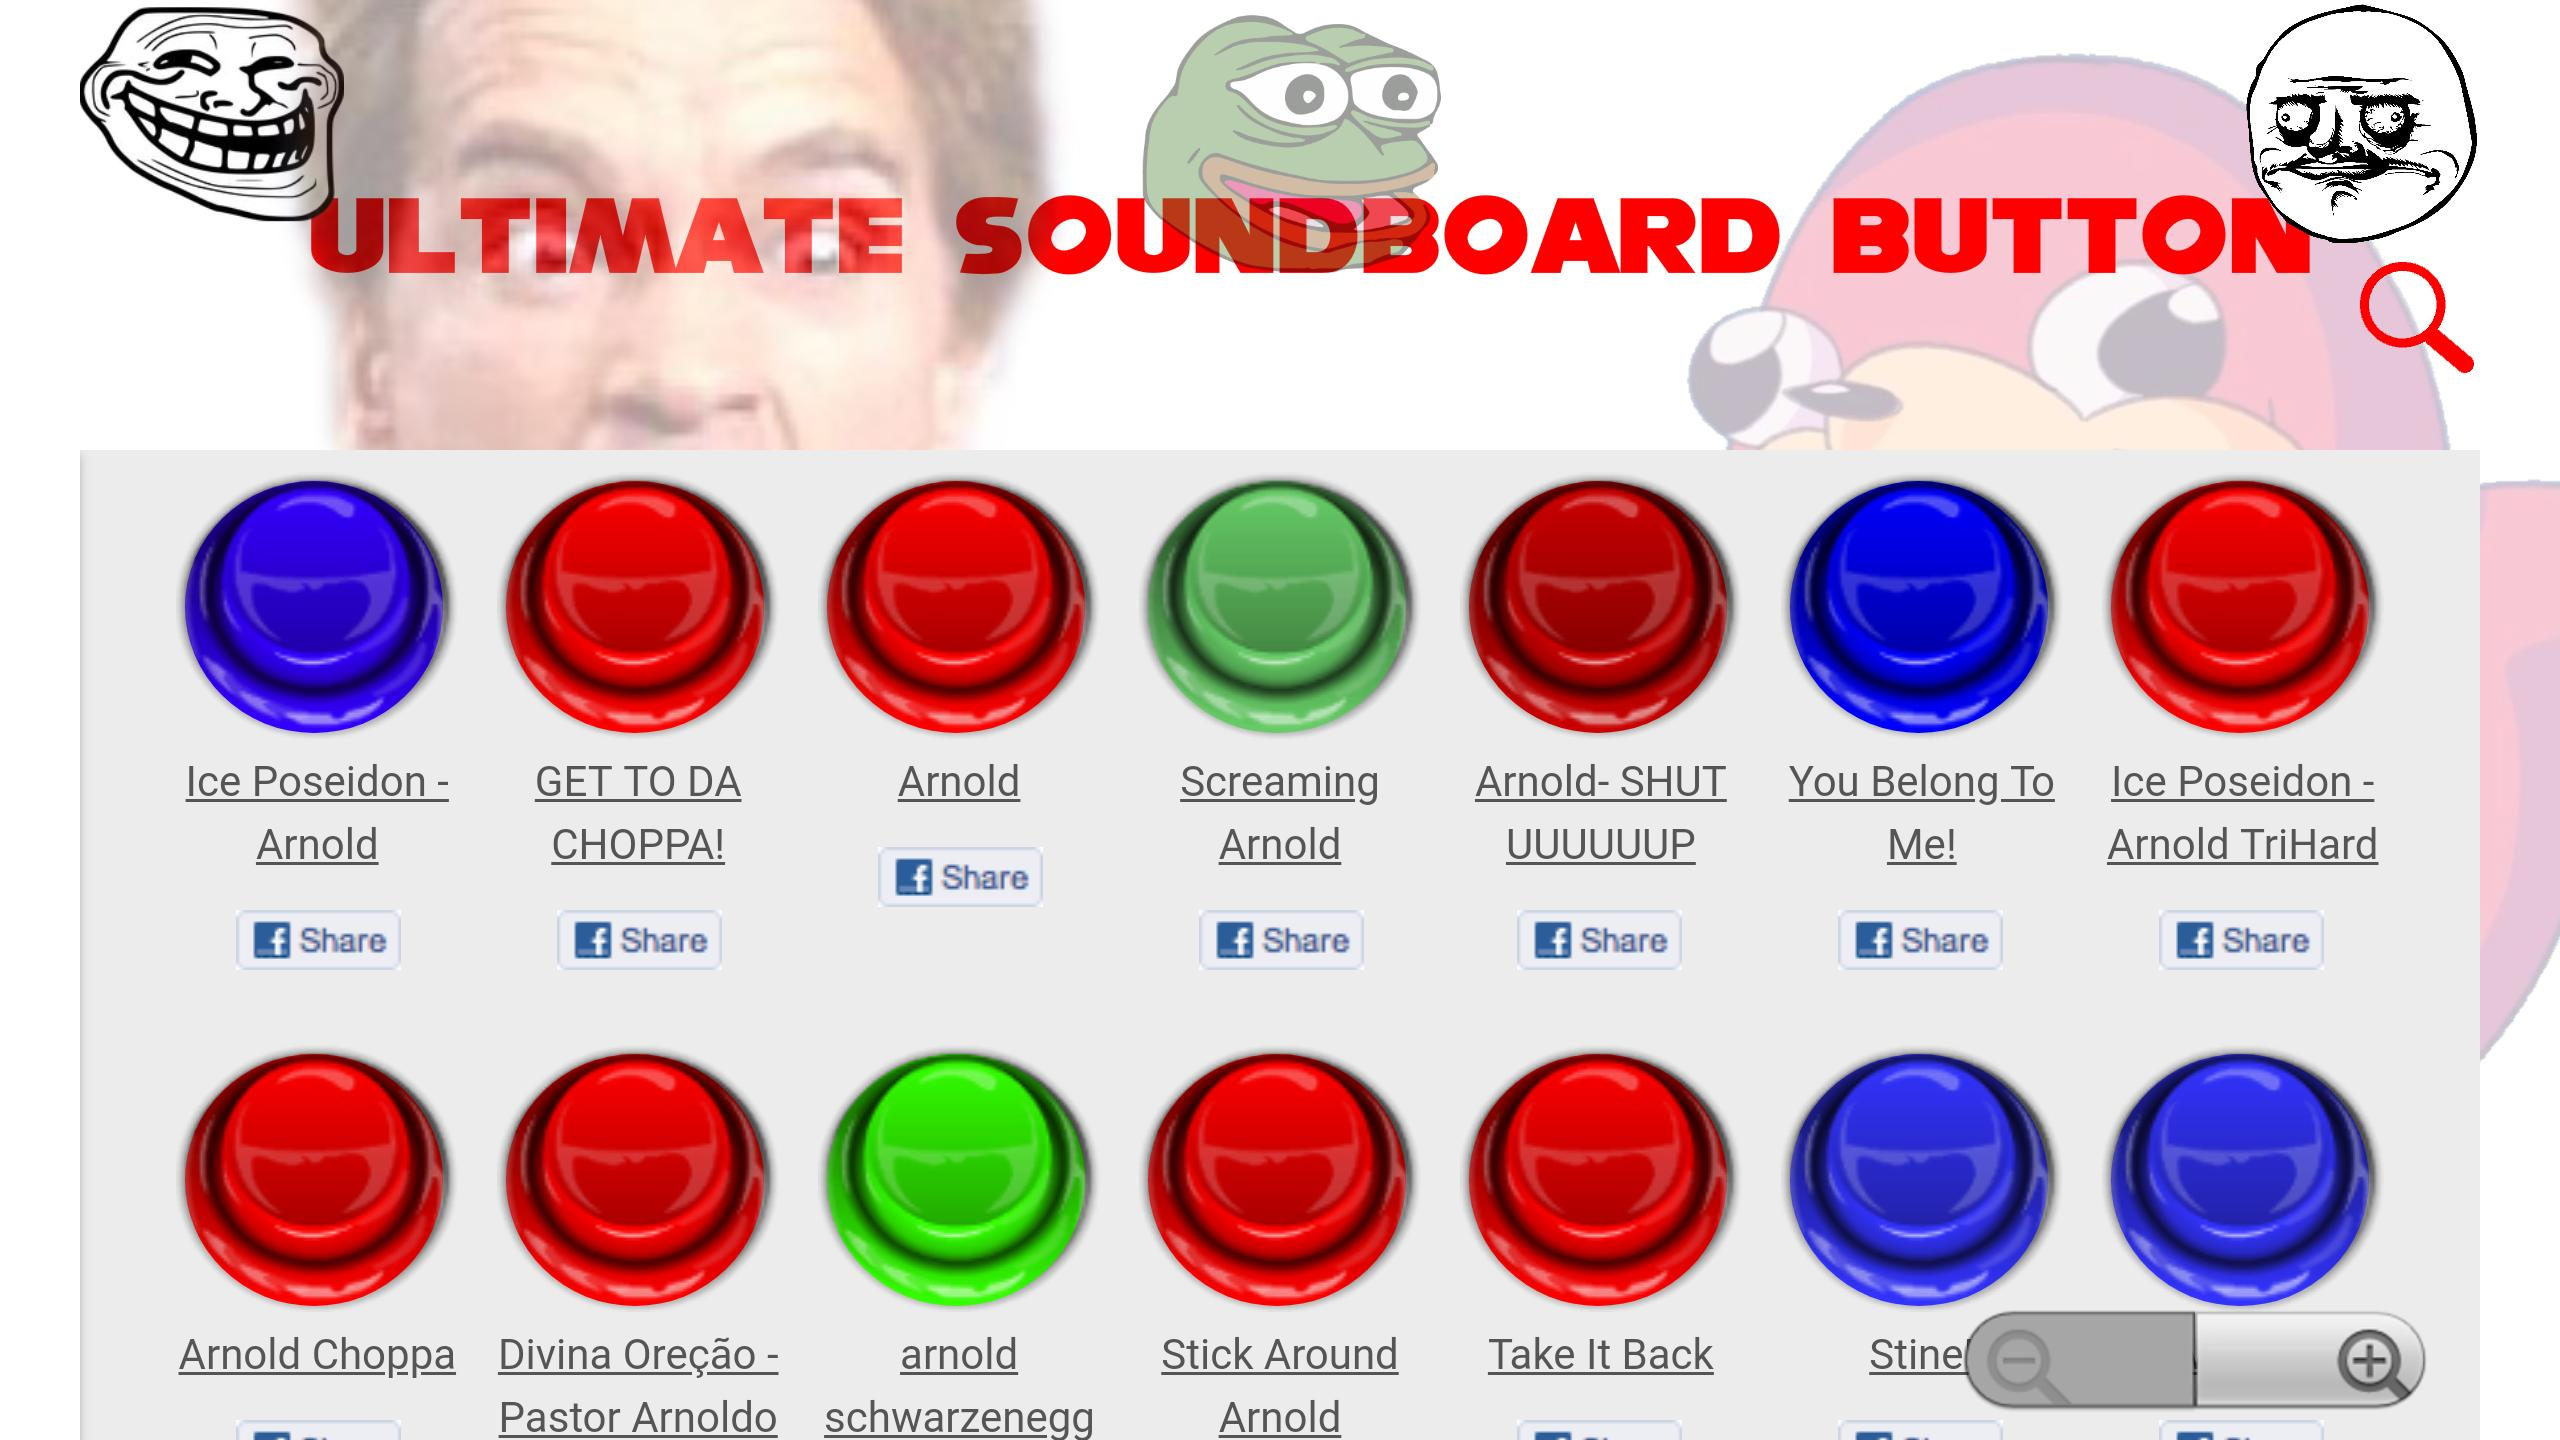 ULTIMATE SOUNDBOARD BUTTON 1000's OF ONLINE MEMES for